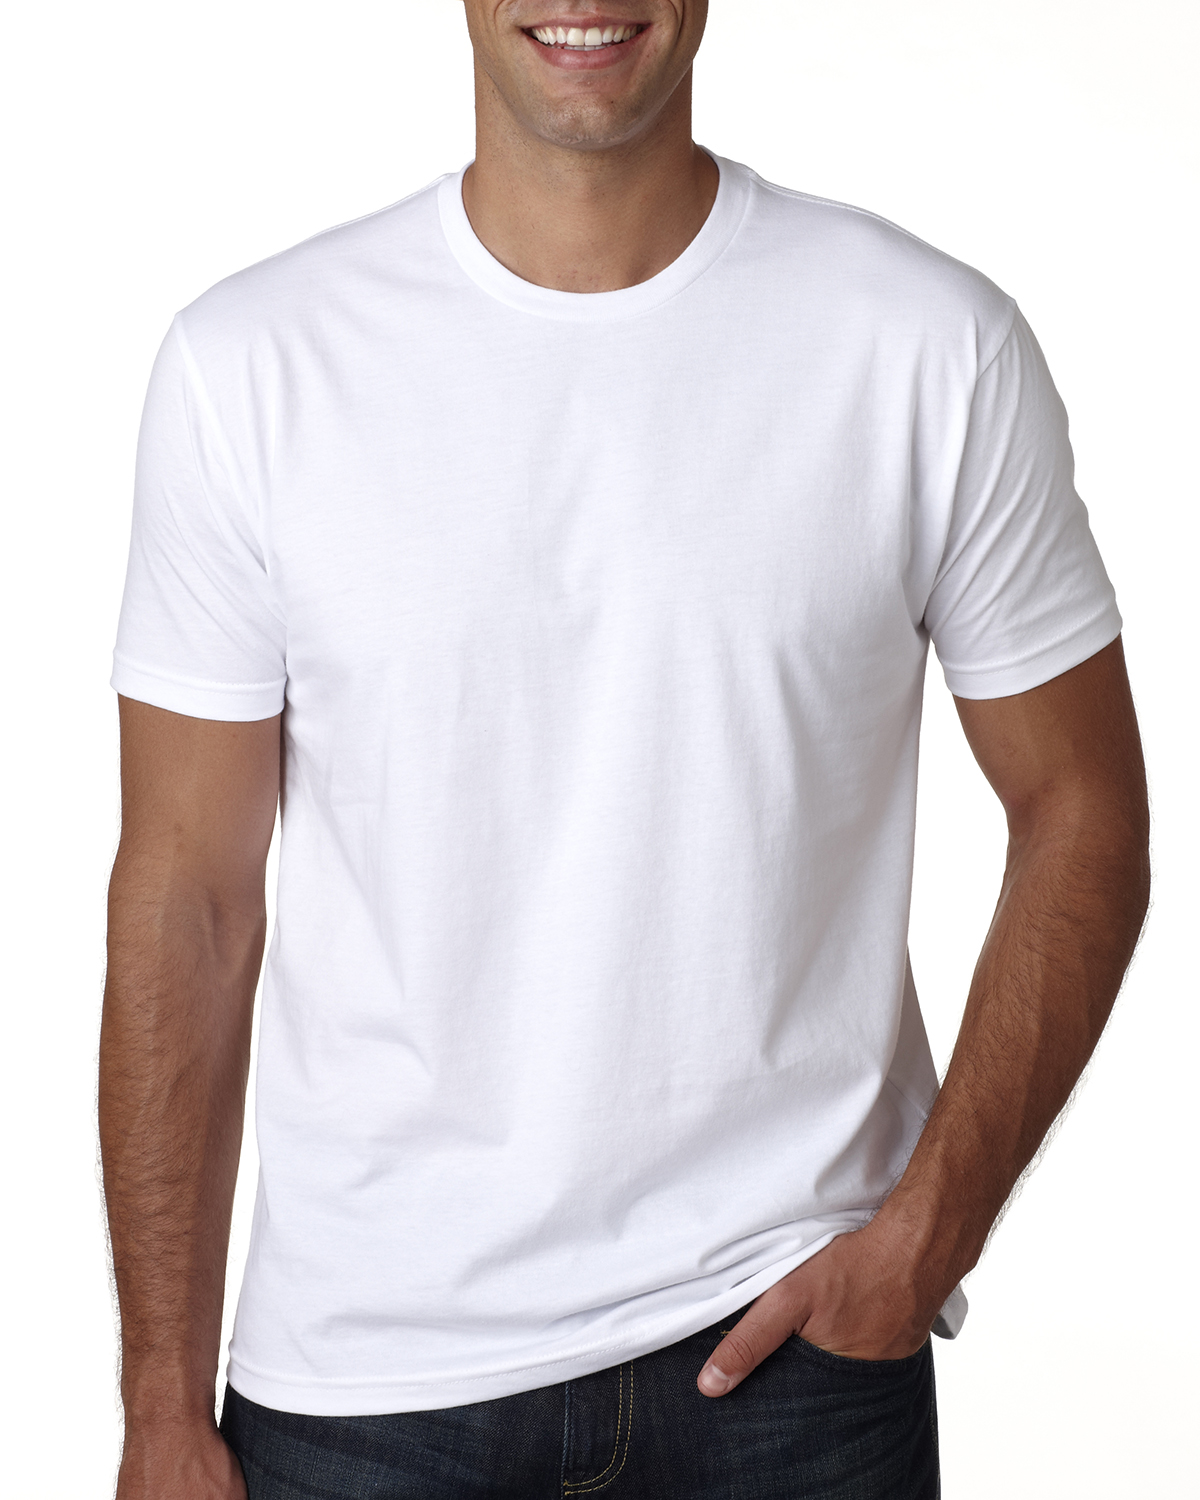 Next Level Apparel 3600A - Men's Made in USA Cotton ...